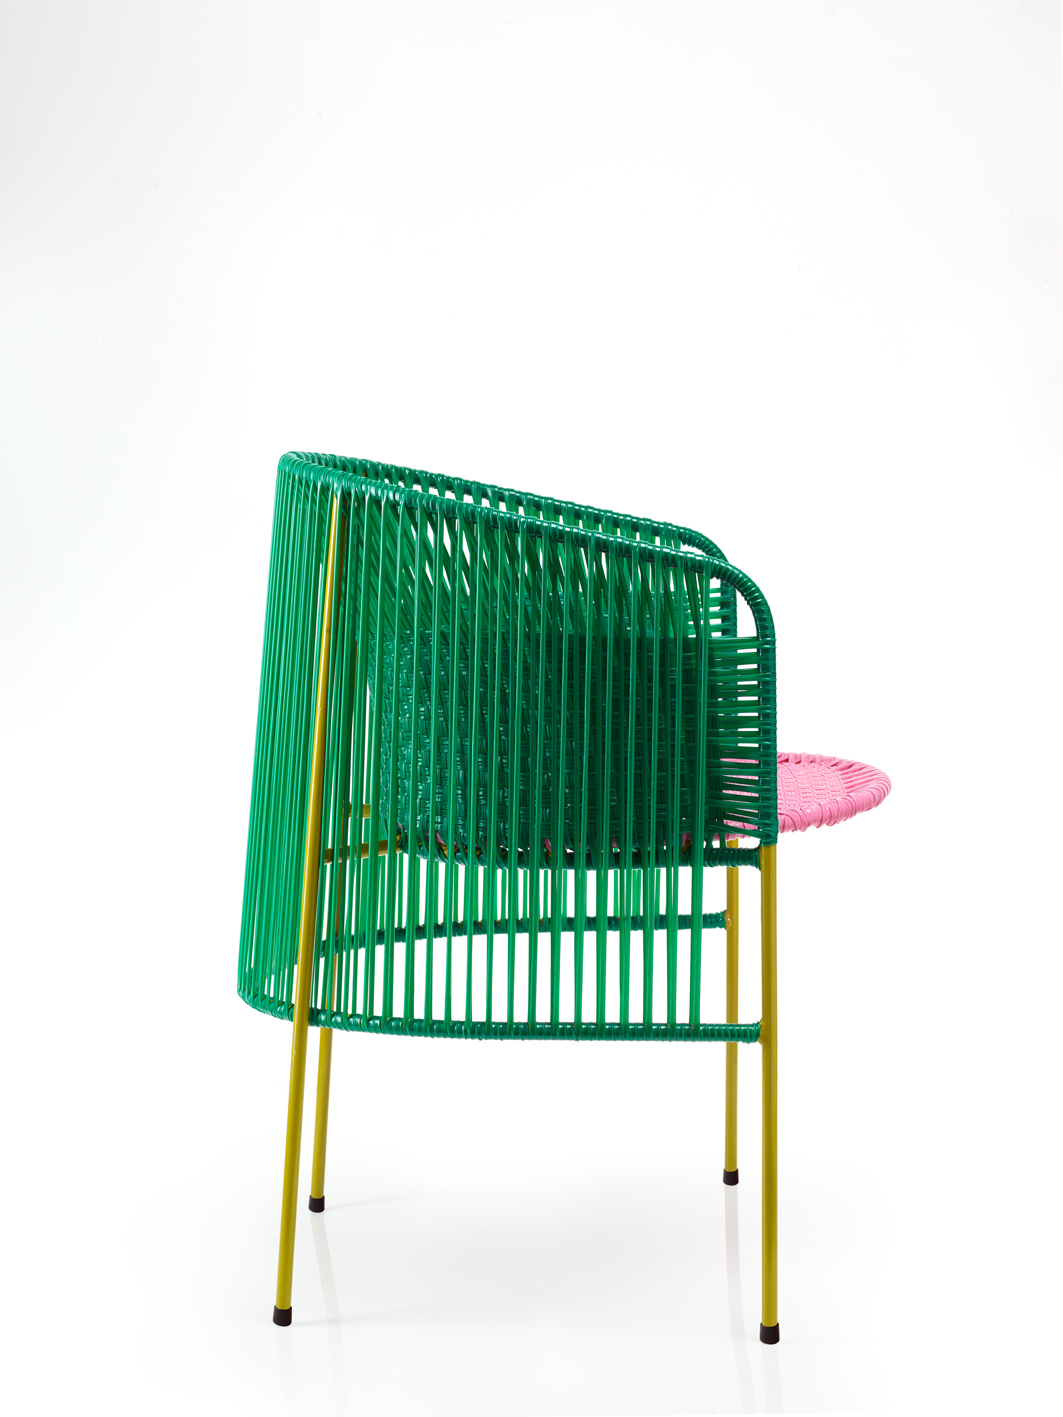 Ames-sala_caribe_chair_2_photo-andresvalbuena